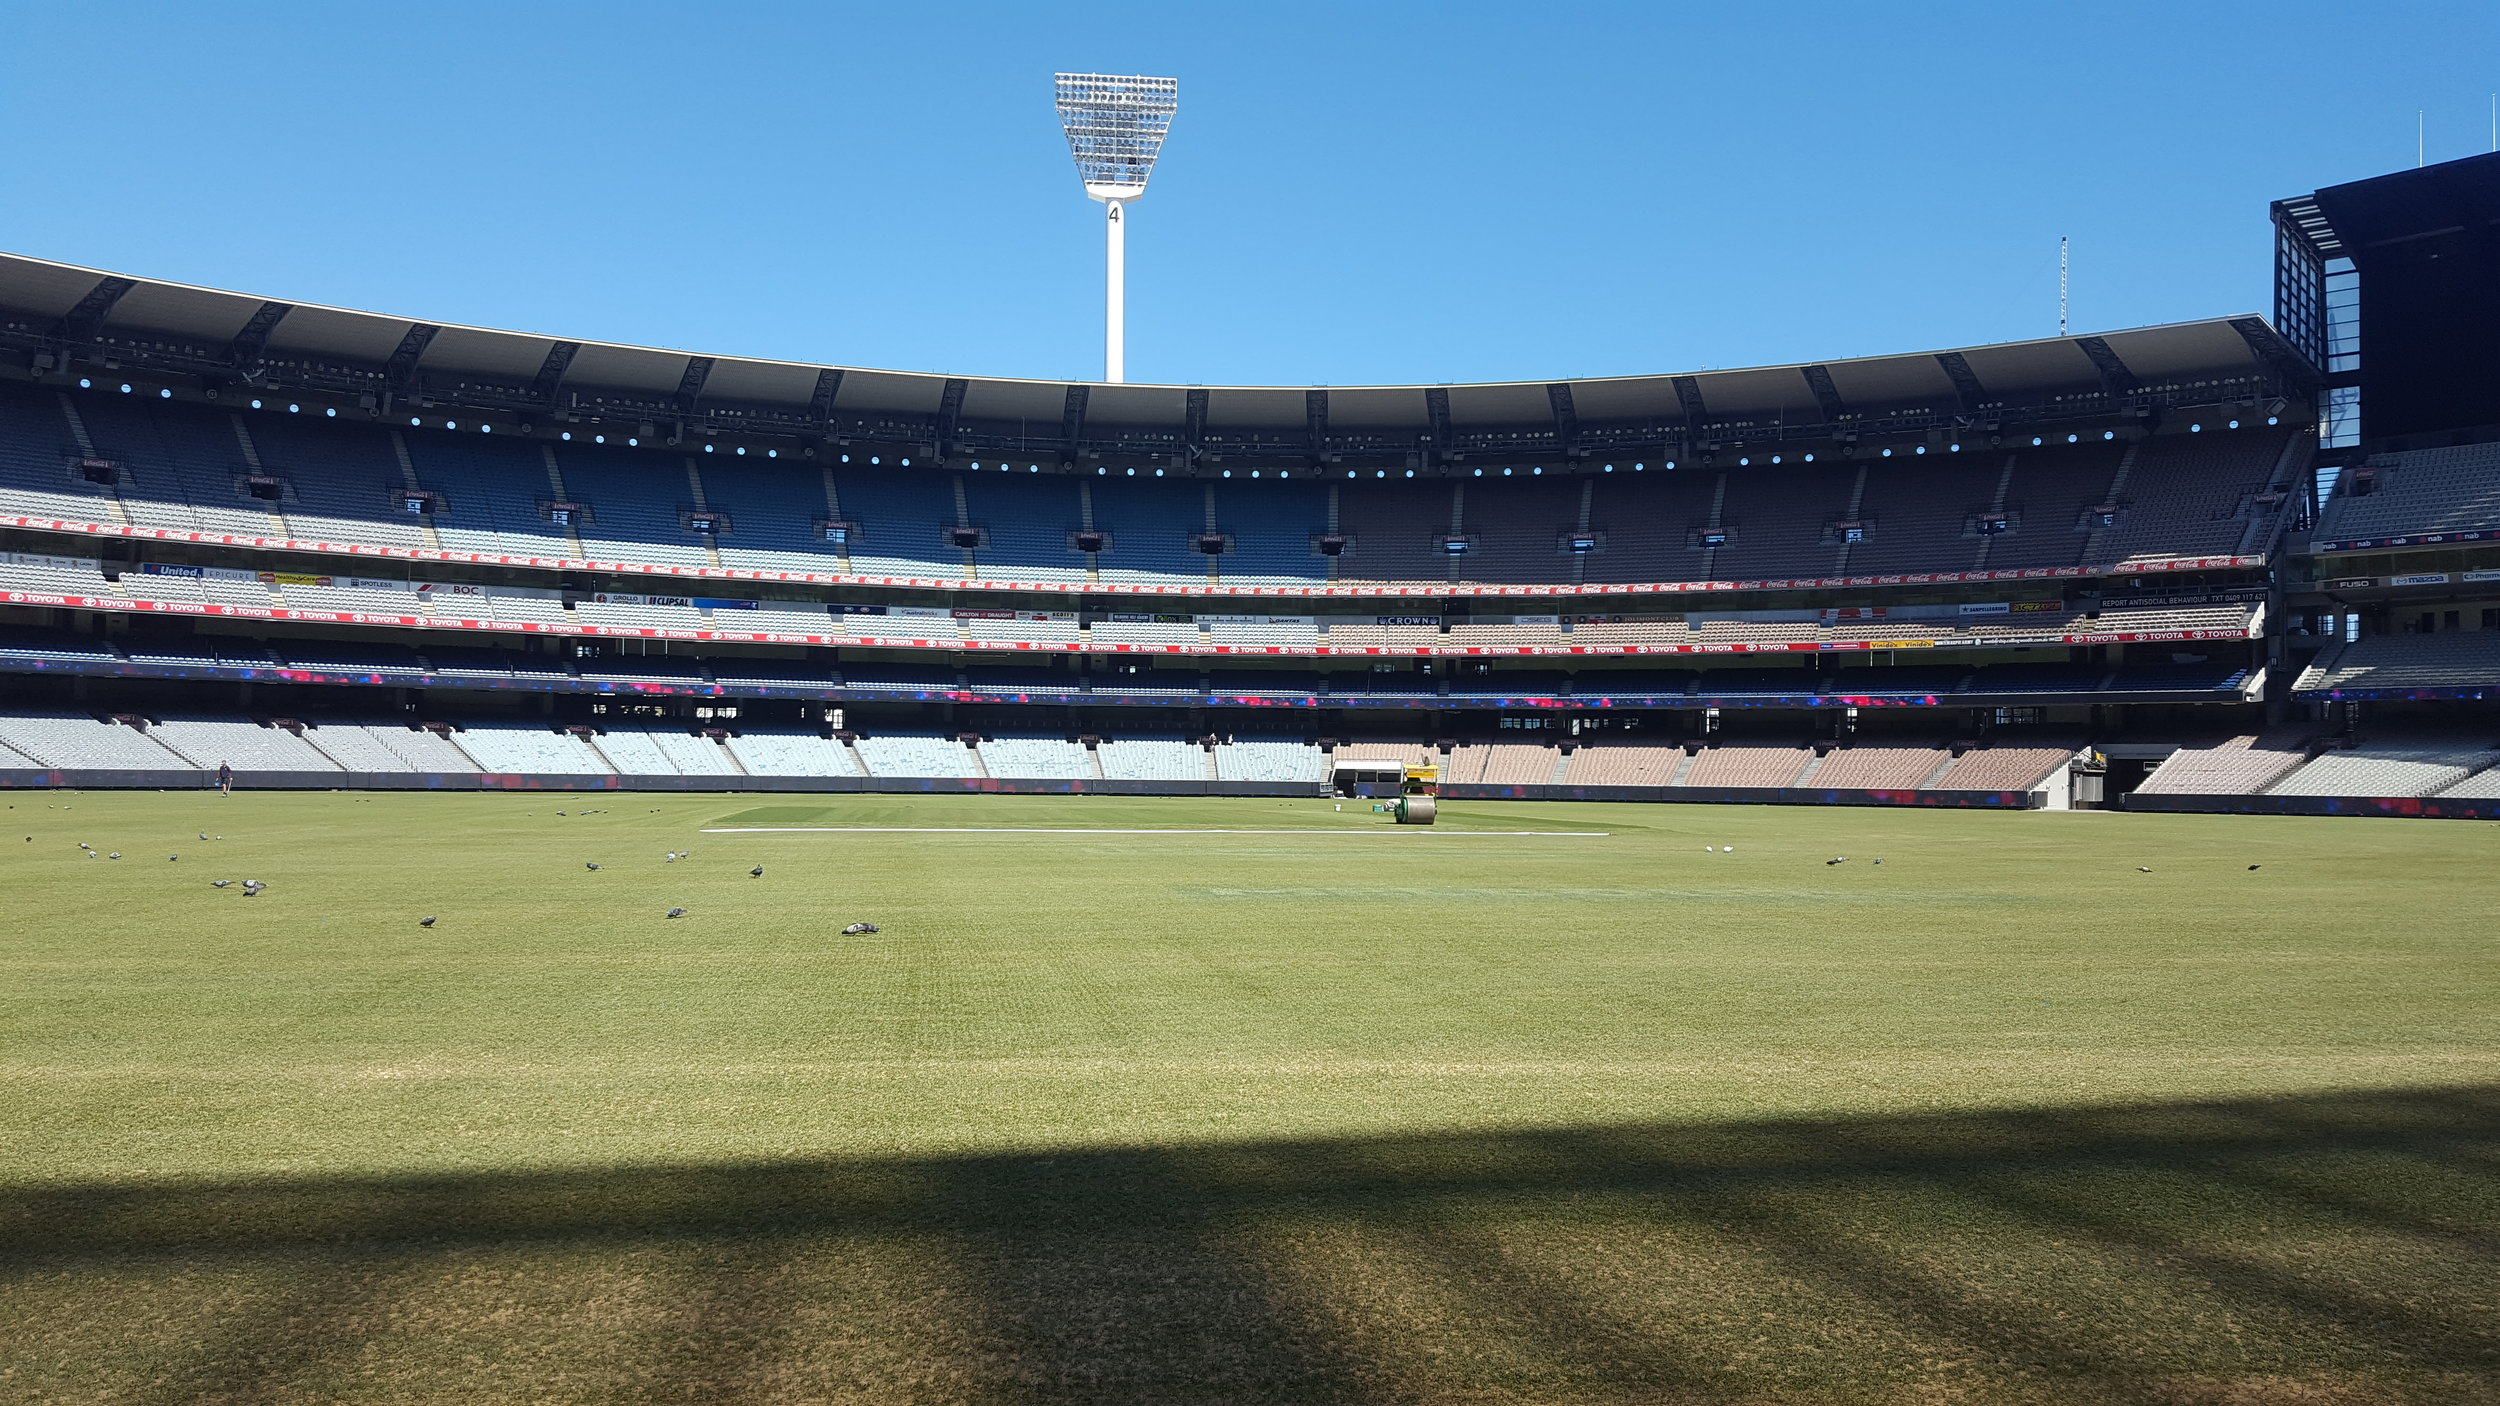 The MCG ground staff have done an amazing job changing this footy ground into The Melbourne Cricket Ground ready for cricket. The rollers are out preparing the hallowed turf.